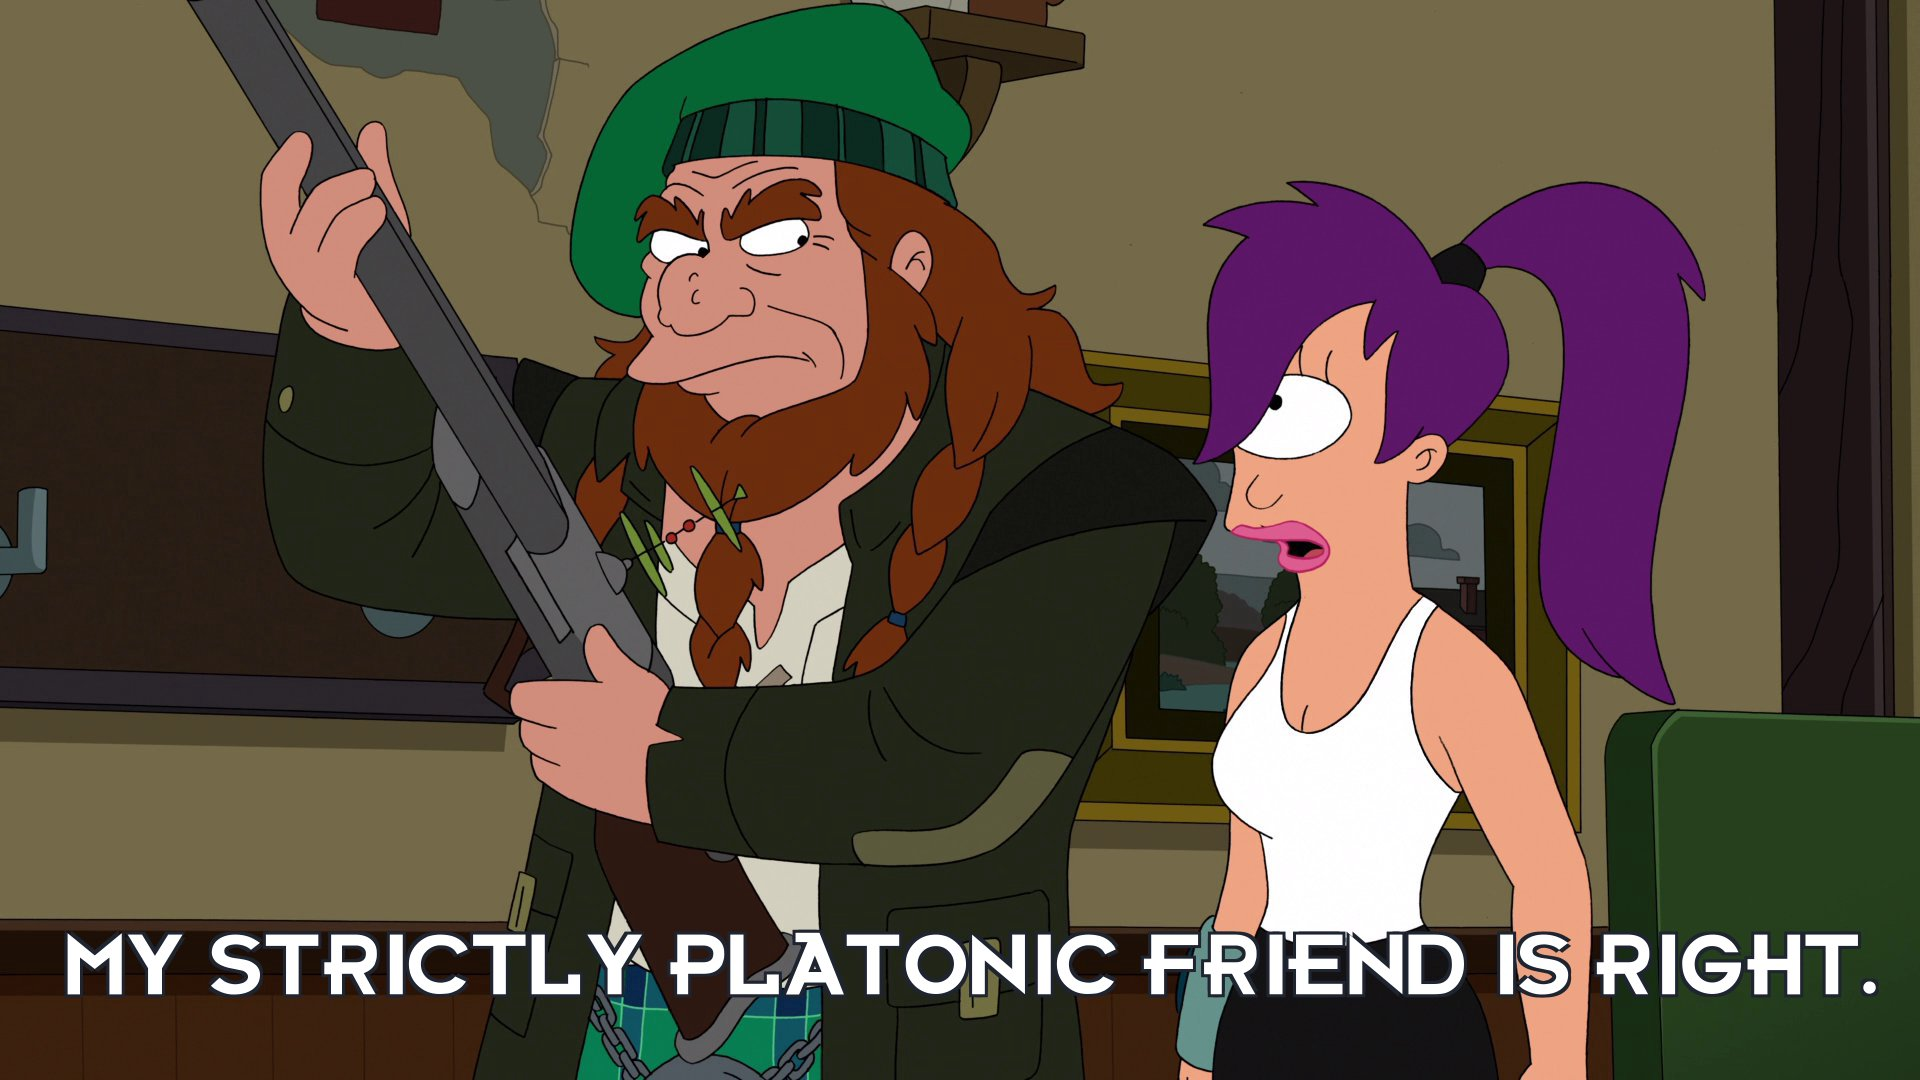 Turanga Leela: My strictly platonic friend is right.